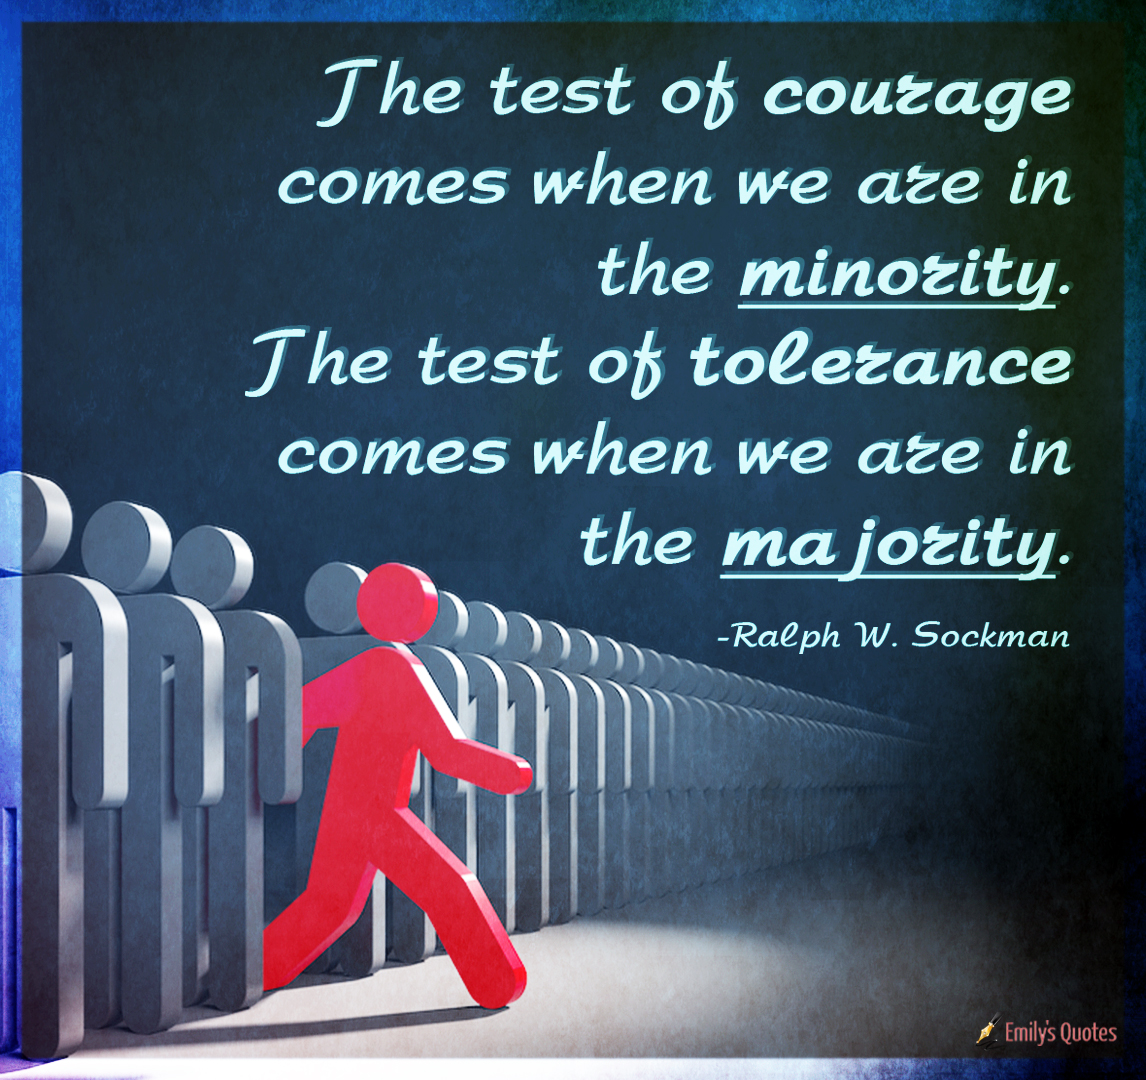 tfp19 wf19  https://emilysquotes.com/the-test-of-courage-comes-when-we-are-in-the-minority-the-test-of-tolerance/